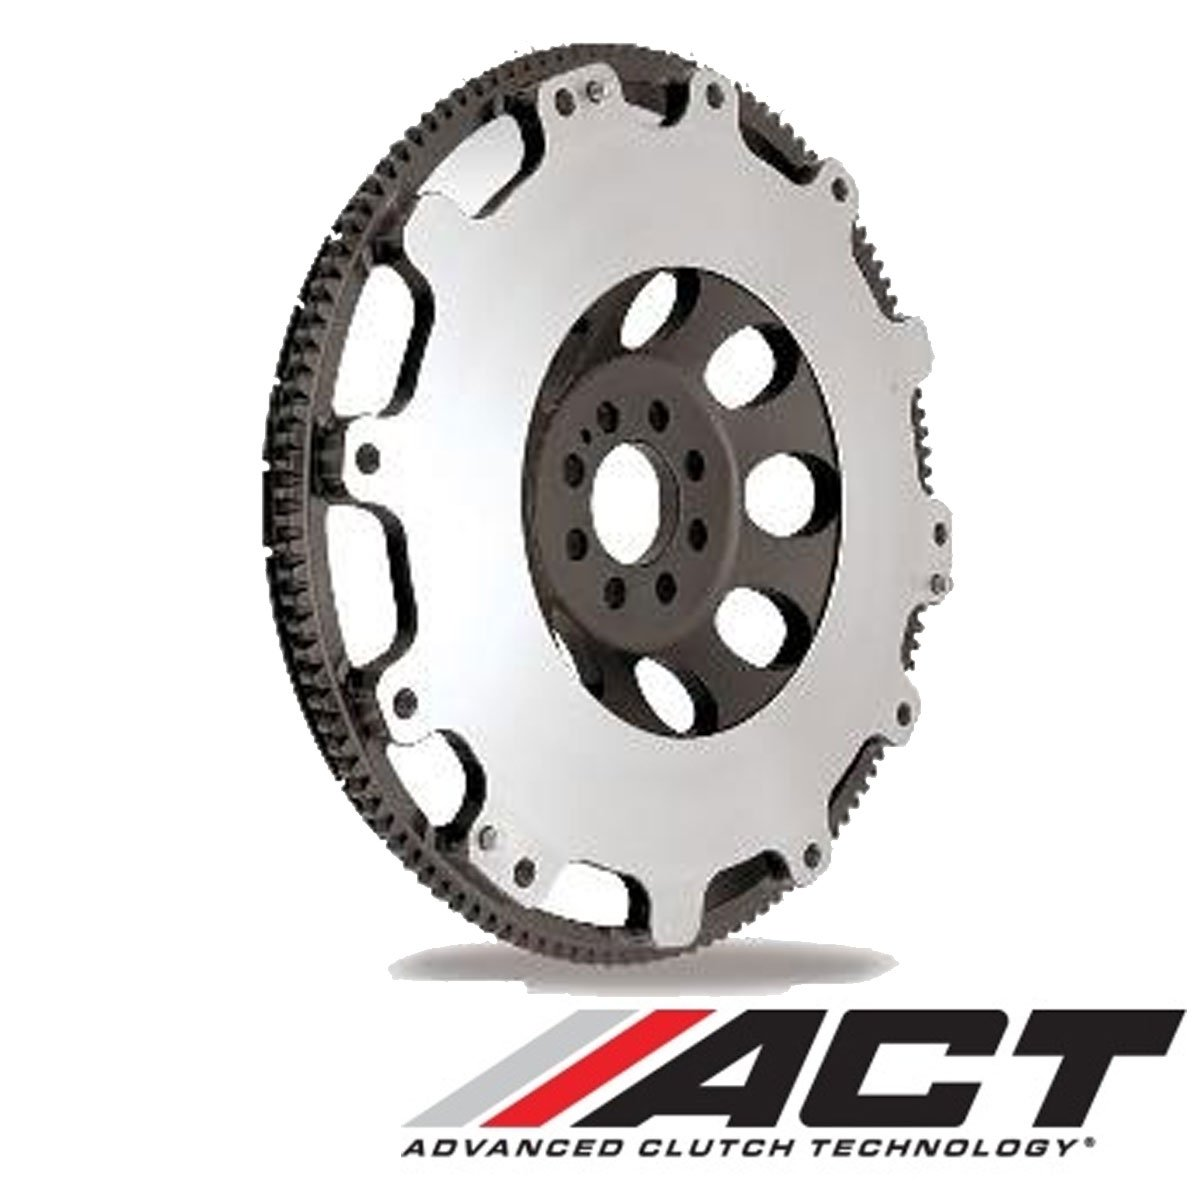 ACT 600410 XACT Prolite Flywheel by ACT (Image #1)